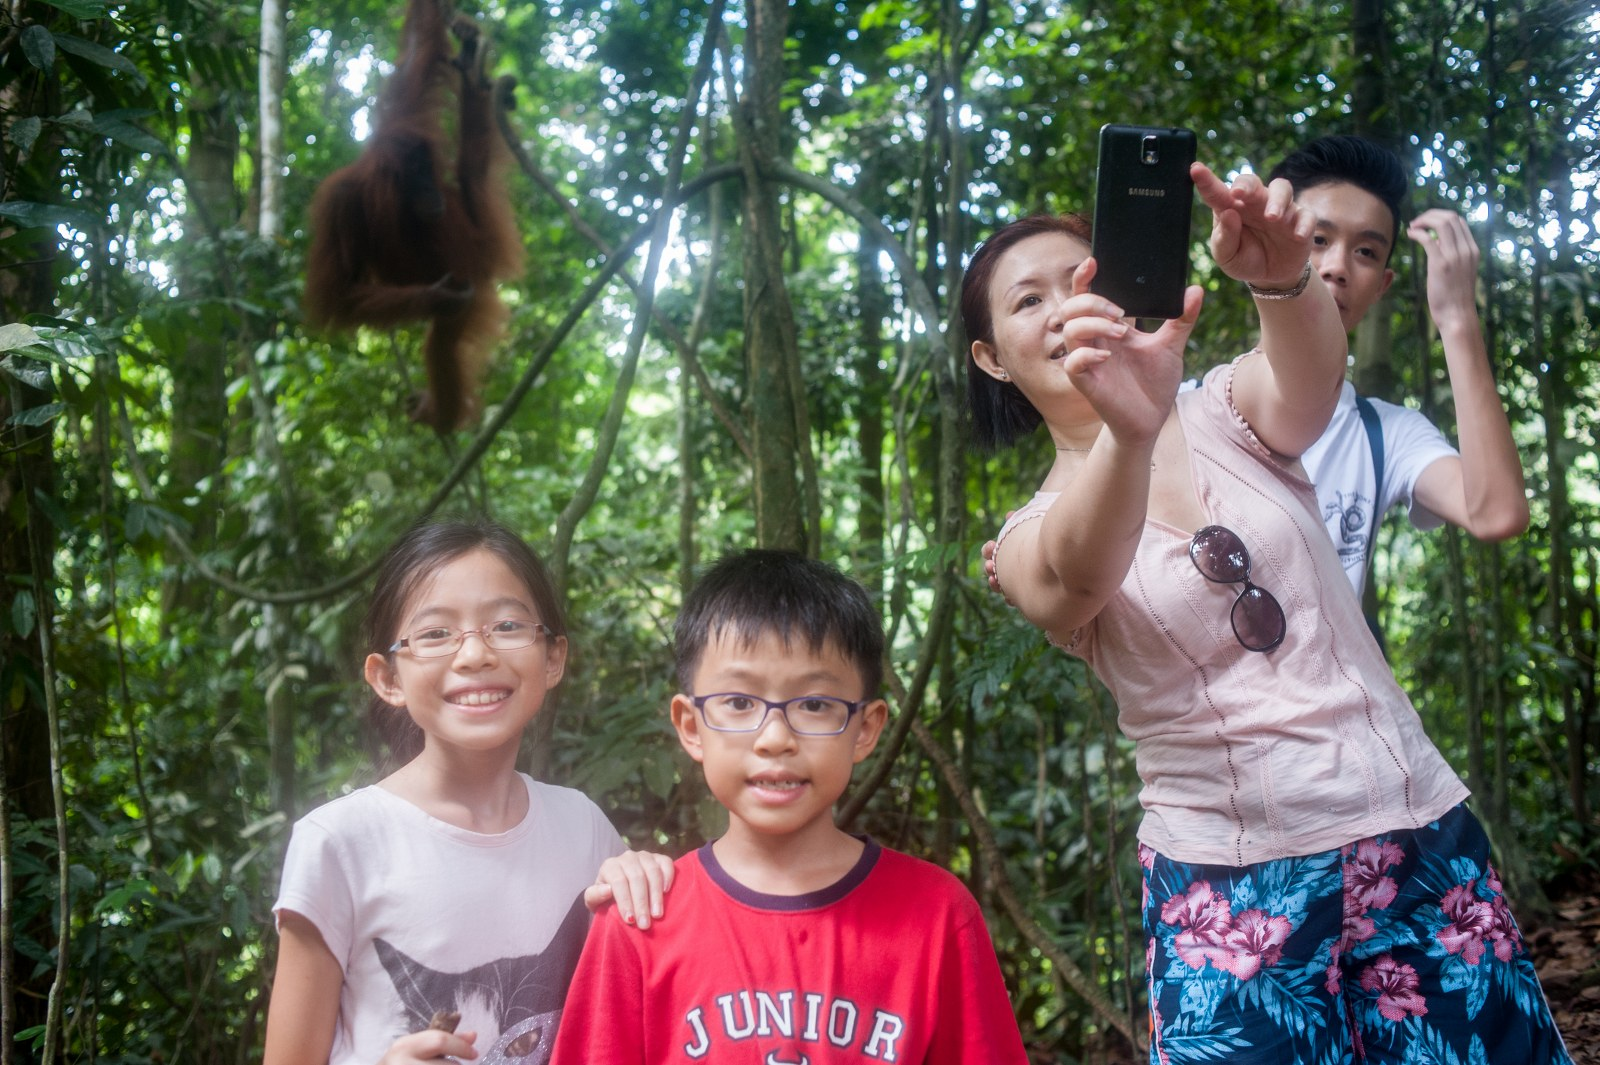 Wefie with the orang utans.